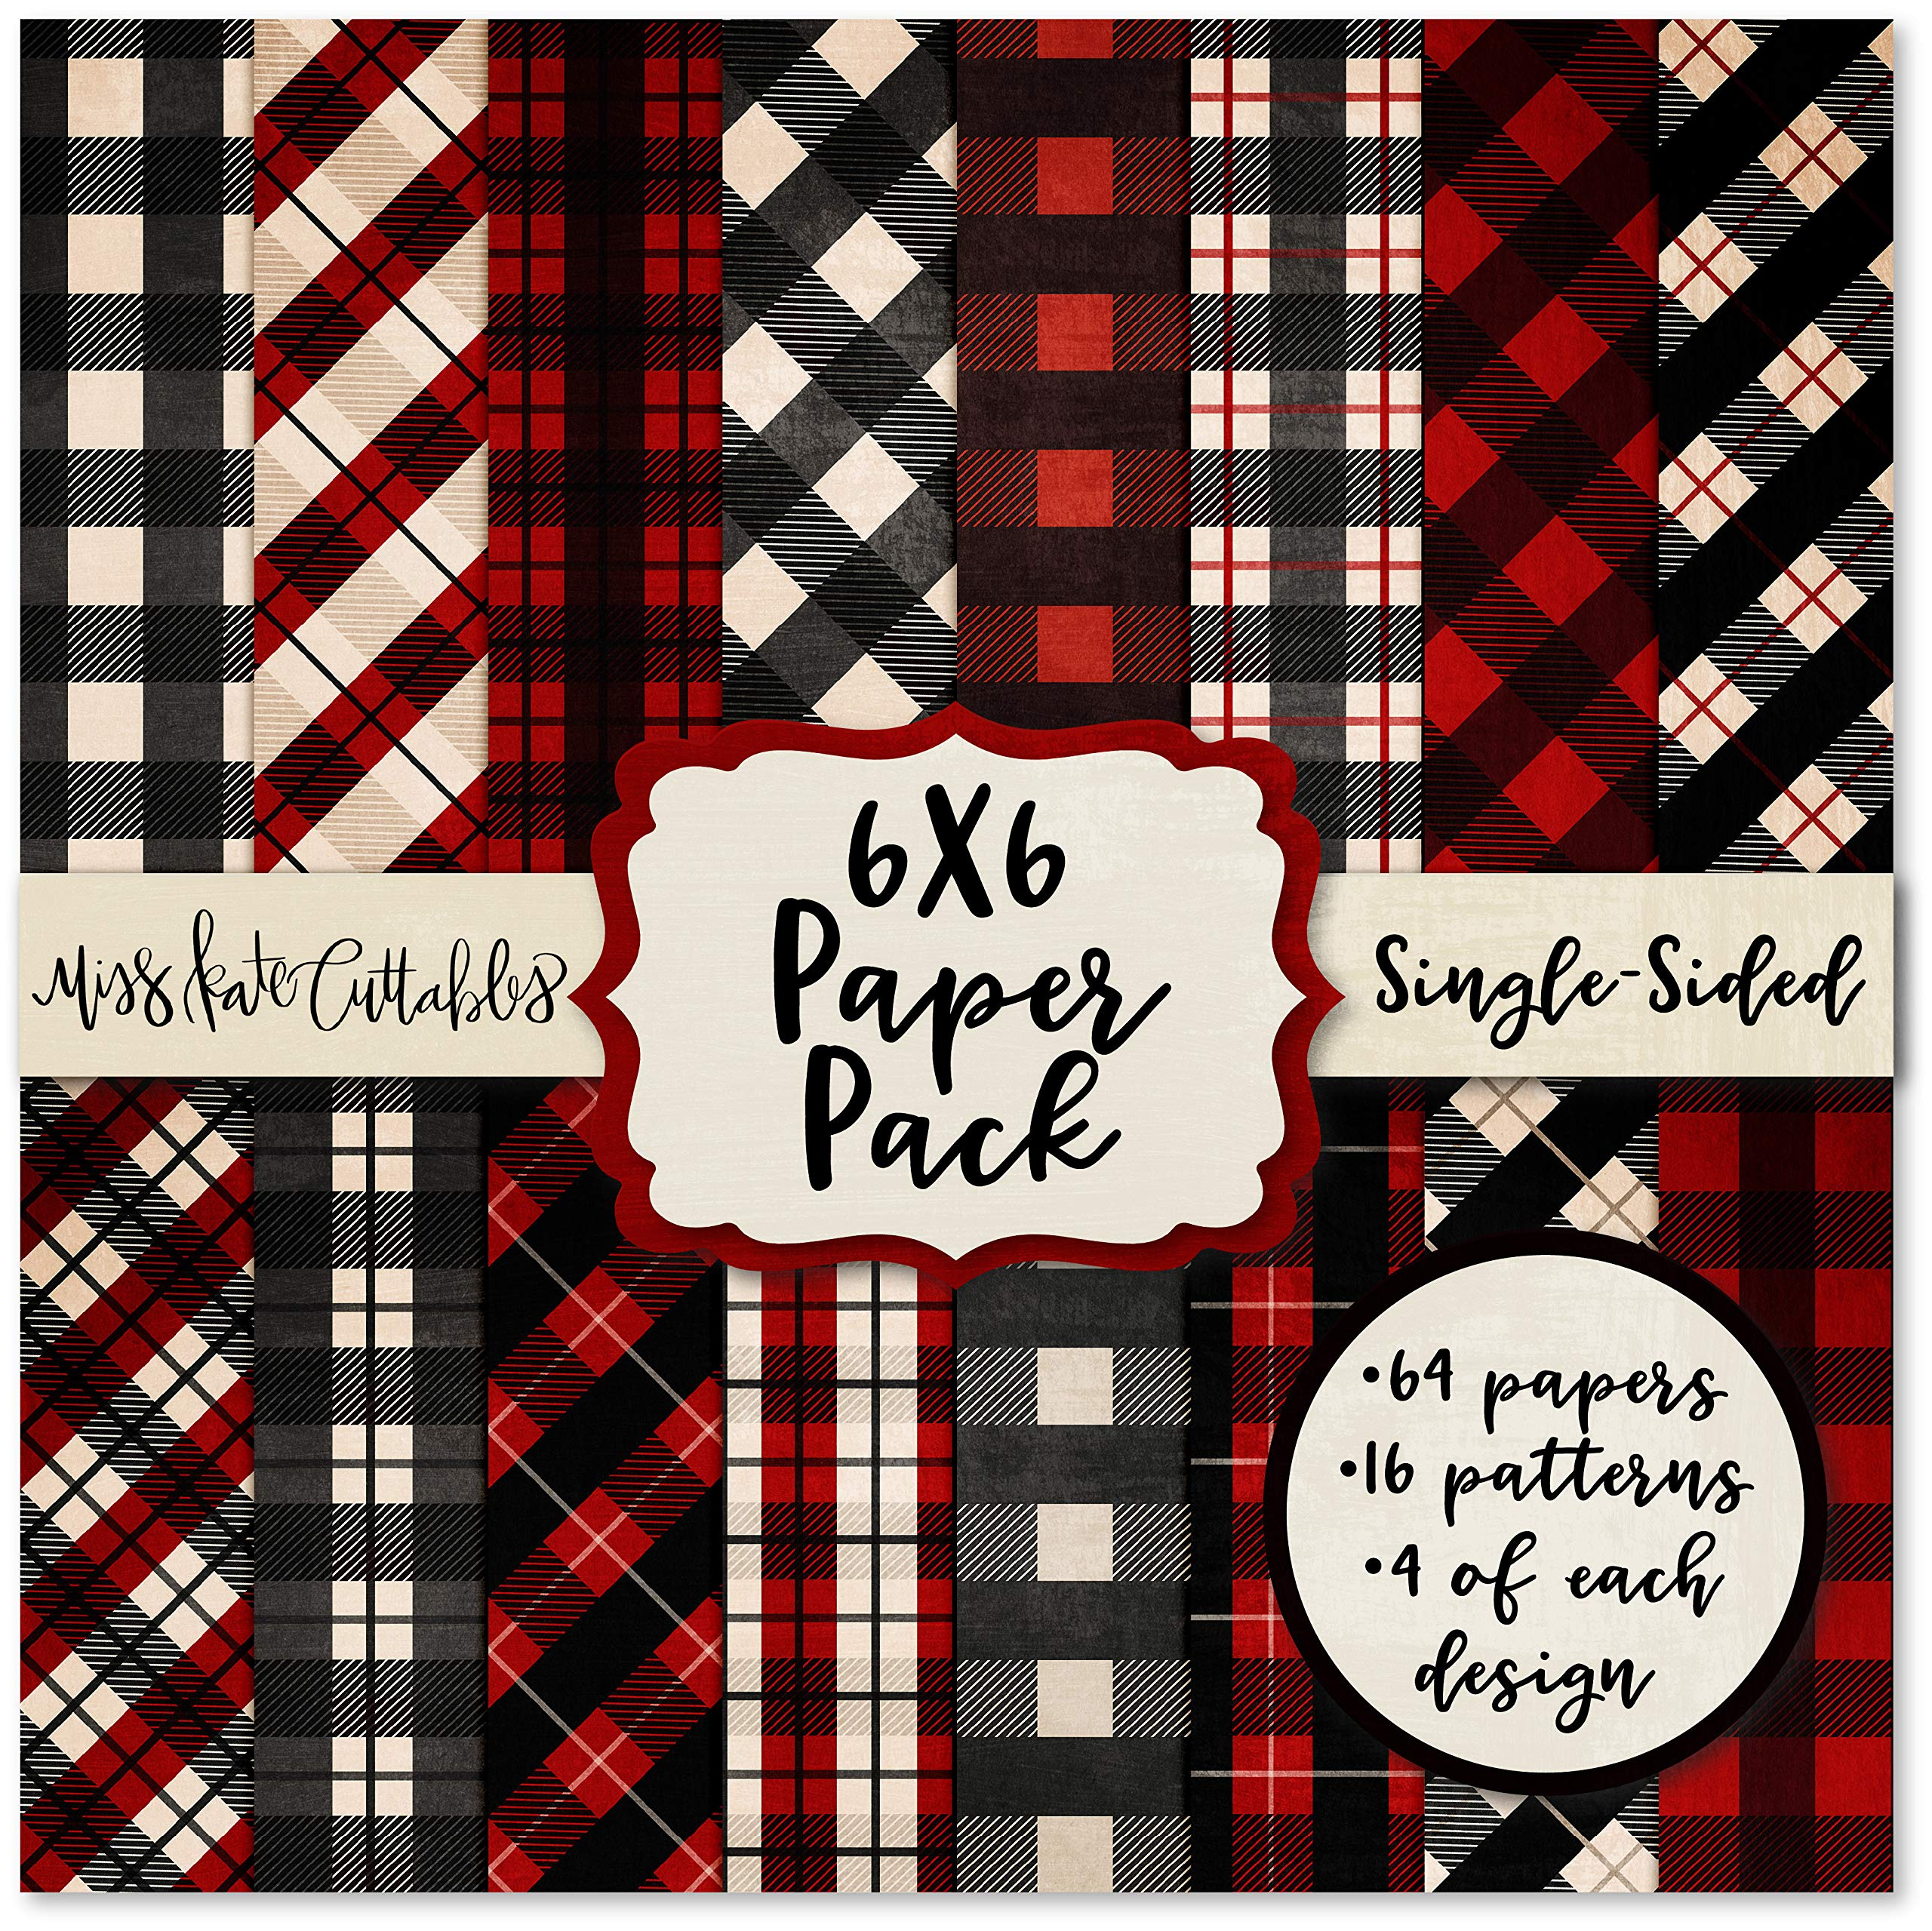 6X6 Pattern Paper Pack - Red & Black Buffalo Check - Card Making Scrapbook Specialty Paper Single-Sided 6''x6'' Collection Includes 64 Sheets - by Miss Kate Cuttables